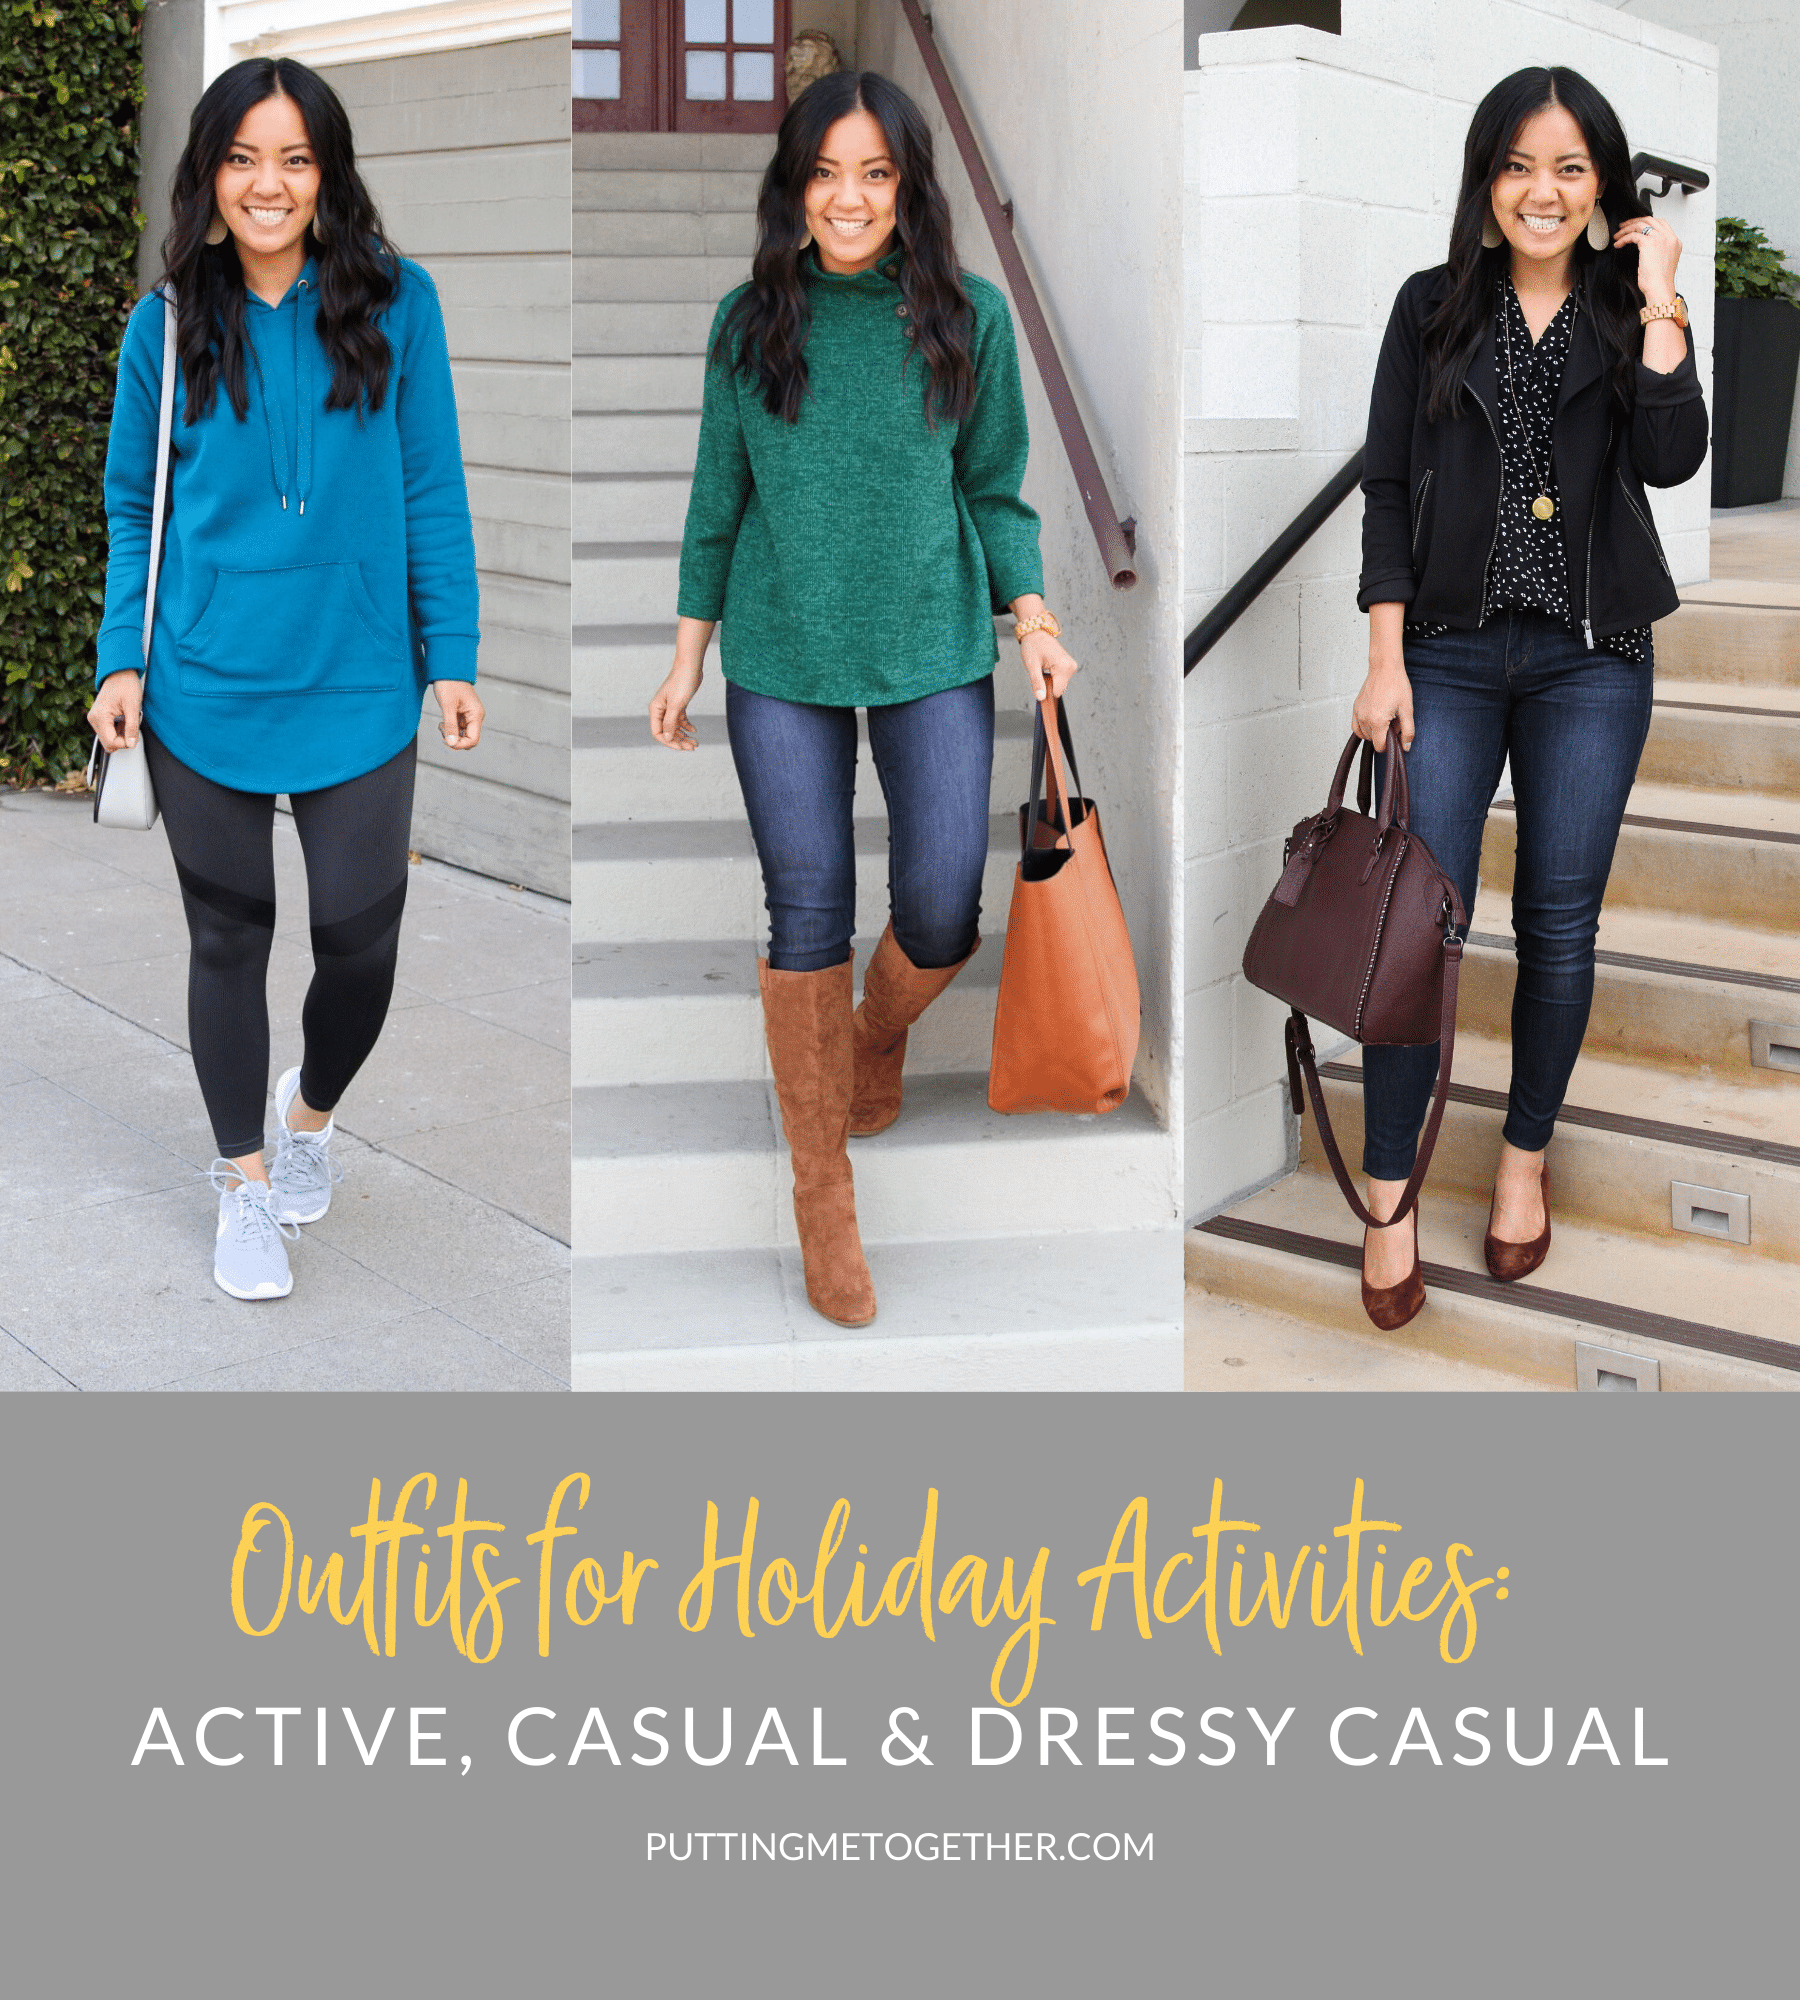 Outfits for Holiday Activities: Active, Casual & Dressy casual